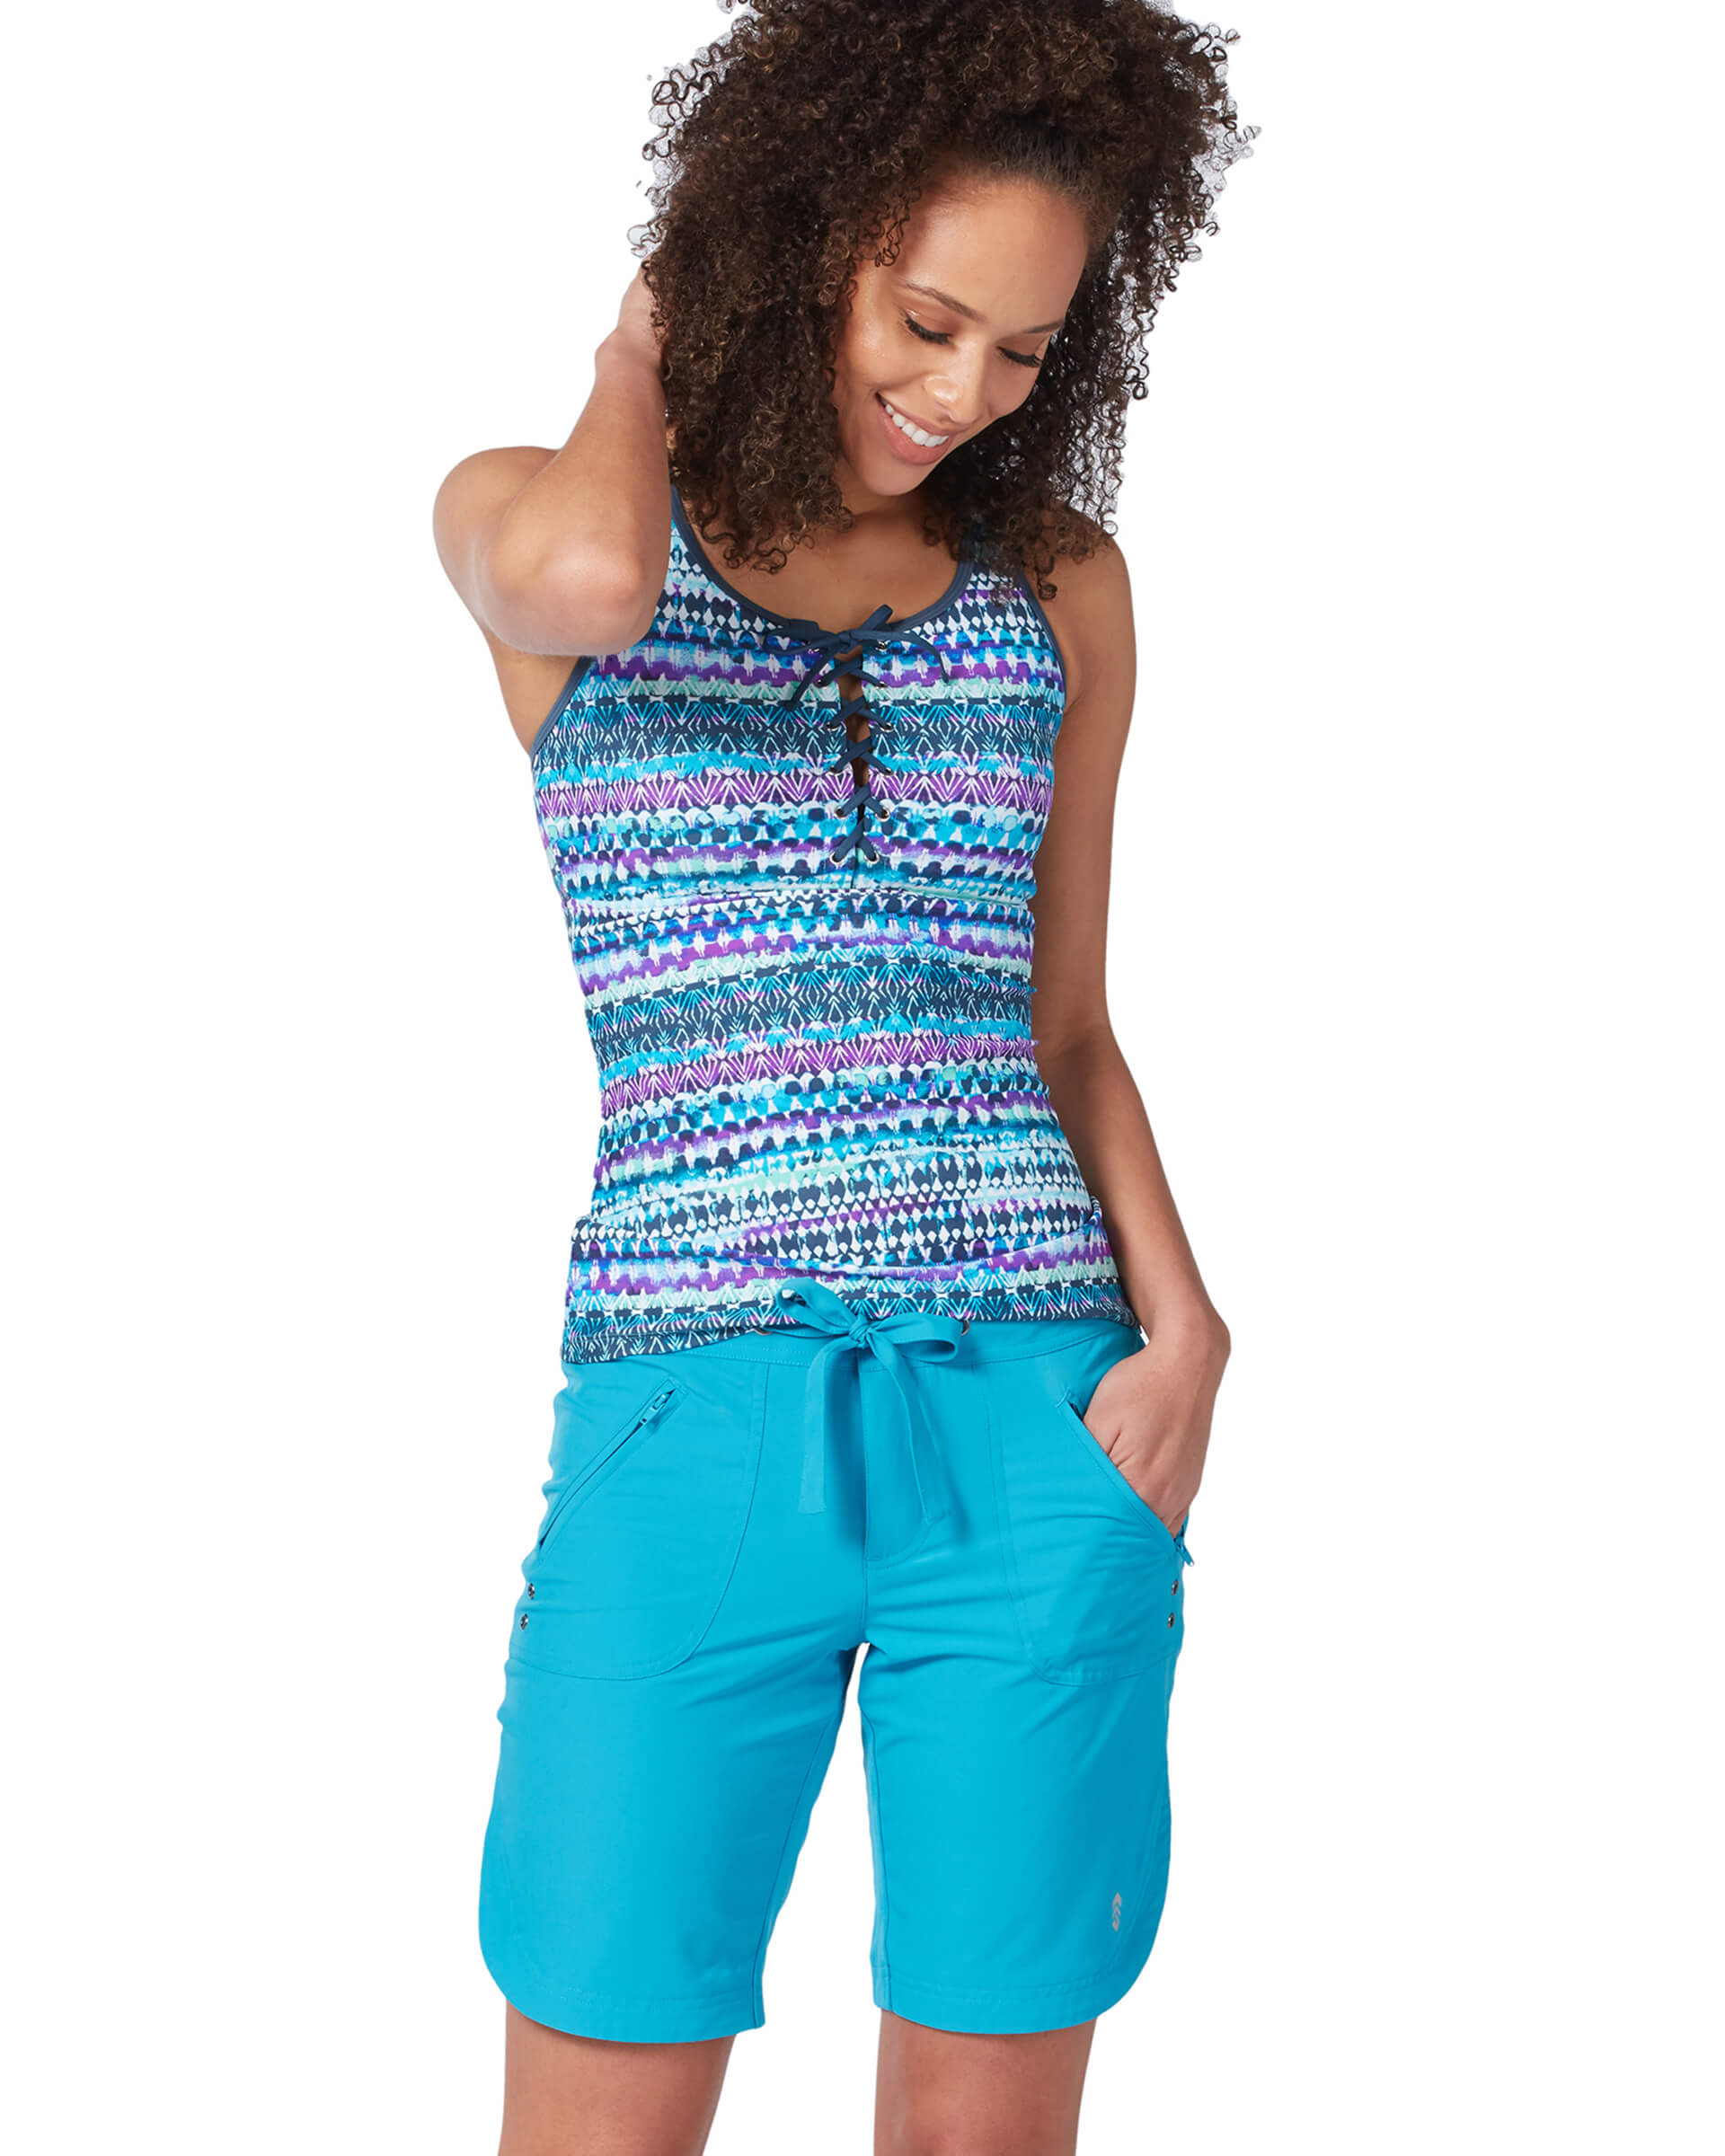 Women's Summer Bliss Lace Up Racerback Tankini Top